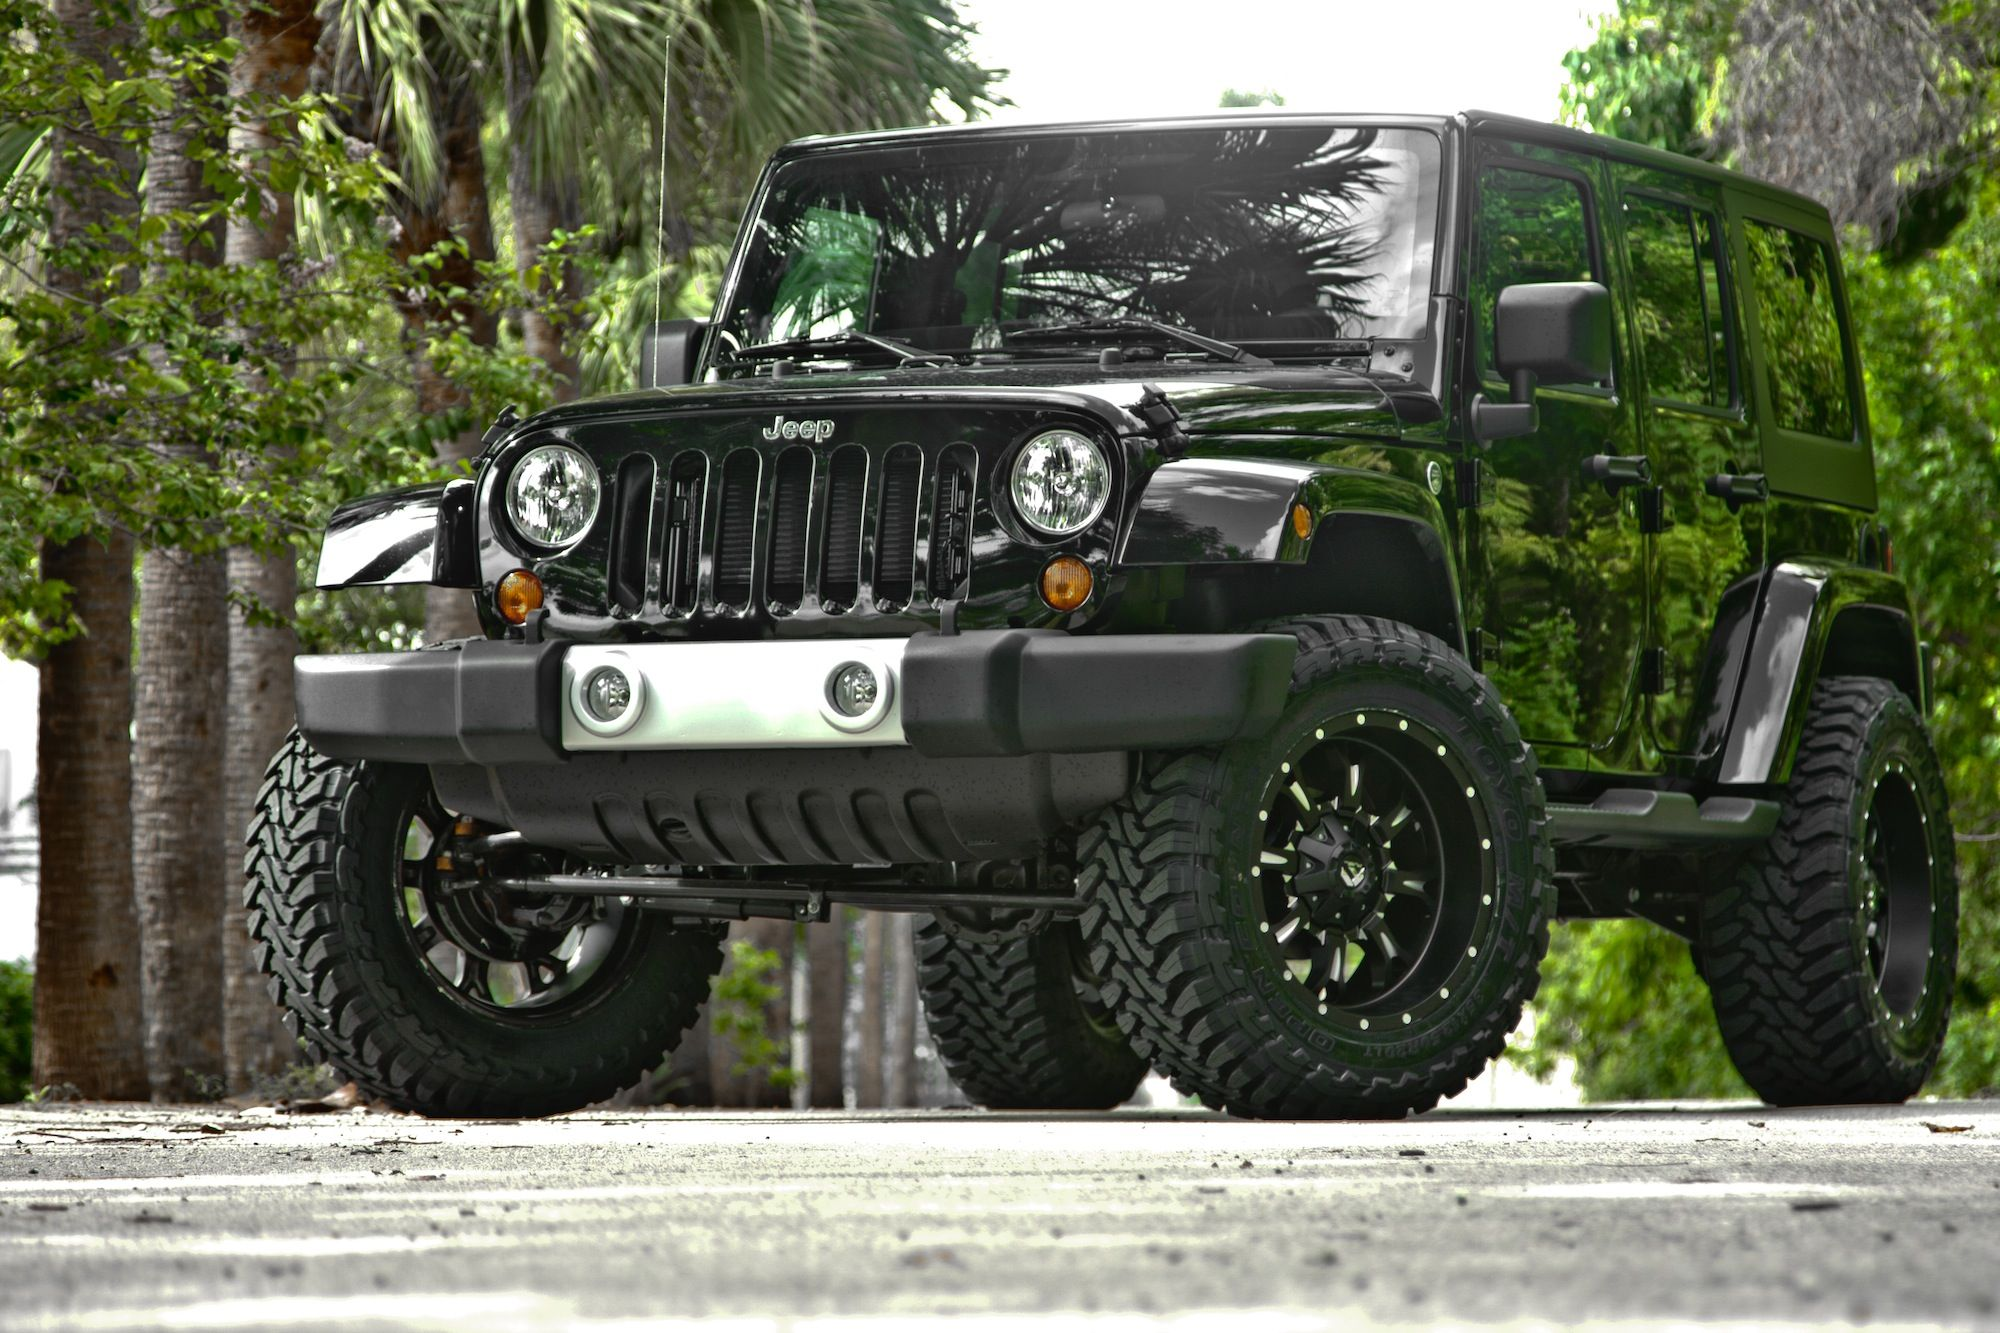 Jeep Wrangler Black 2013 HD Wallpaper | Places to Visit | Jeep wrangler, Jeep, Black hd wallpaper